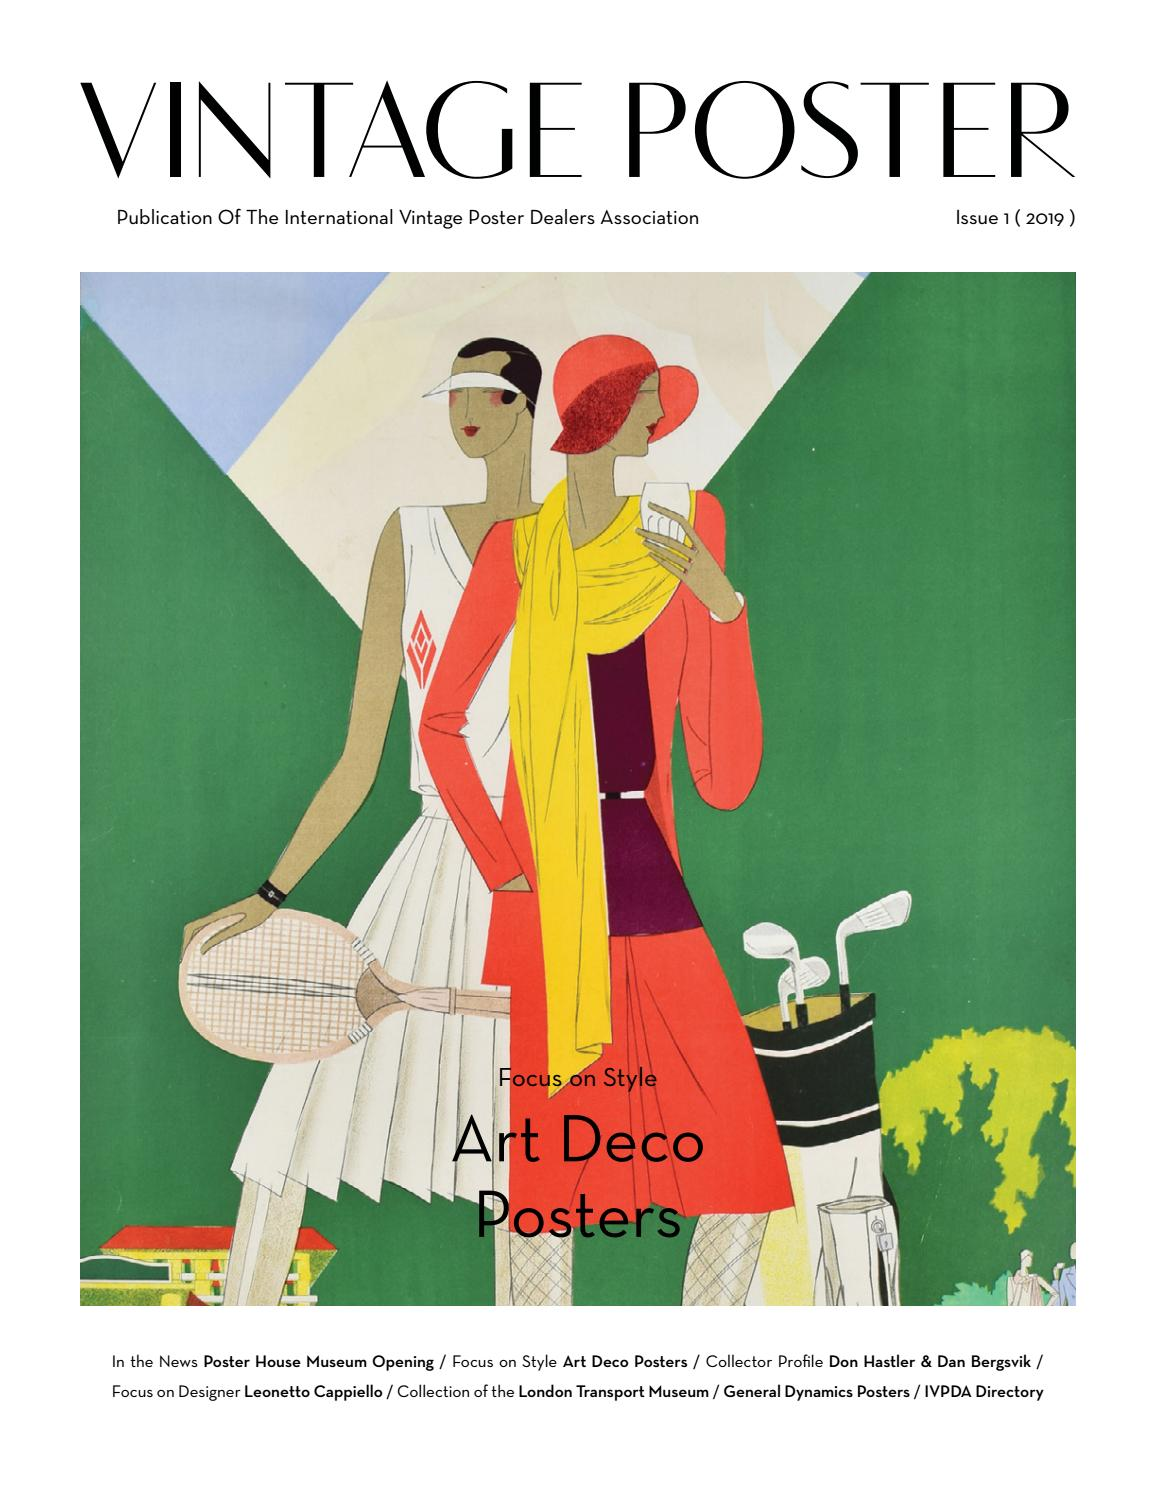 Vintage Poster Ivpda Publication Issue 1 2019 By Vintage Poster Ivpda Magazine Issuu